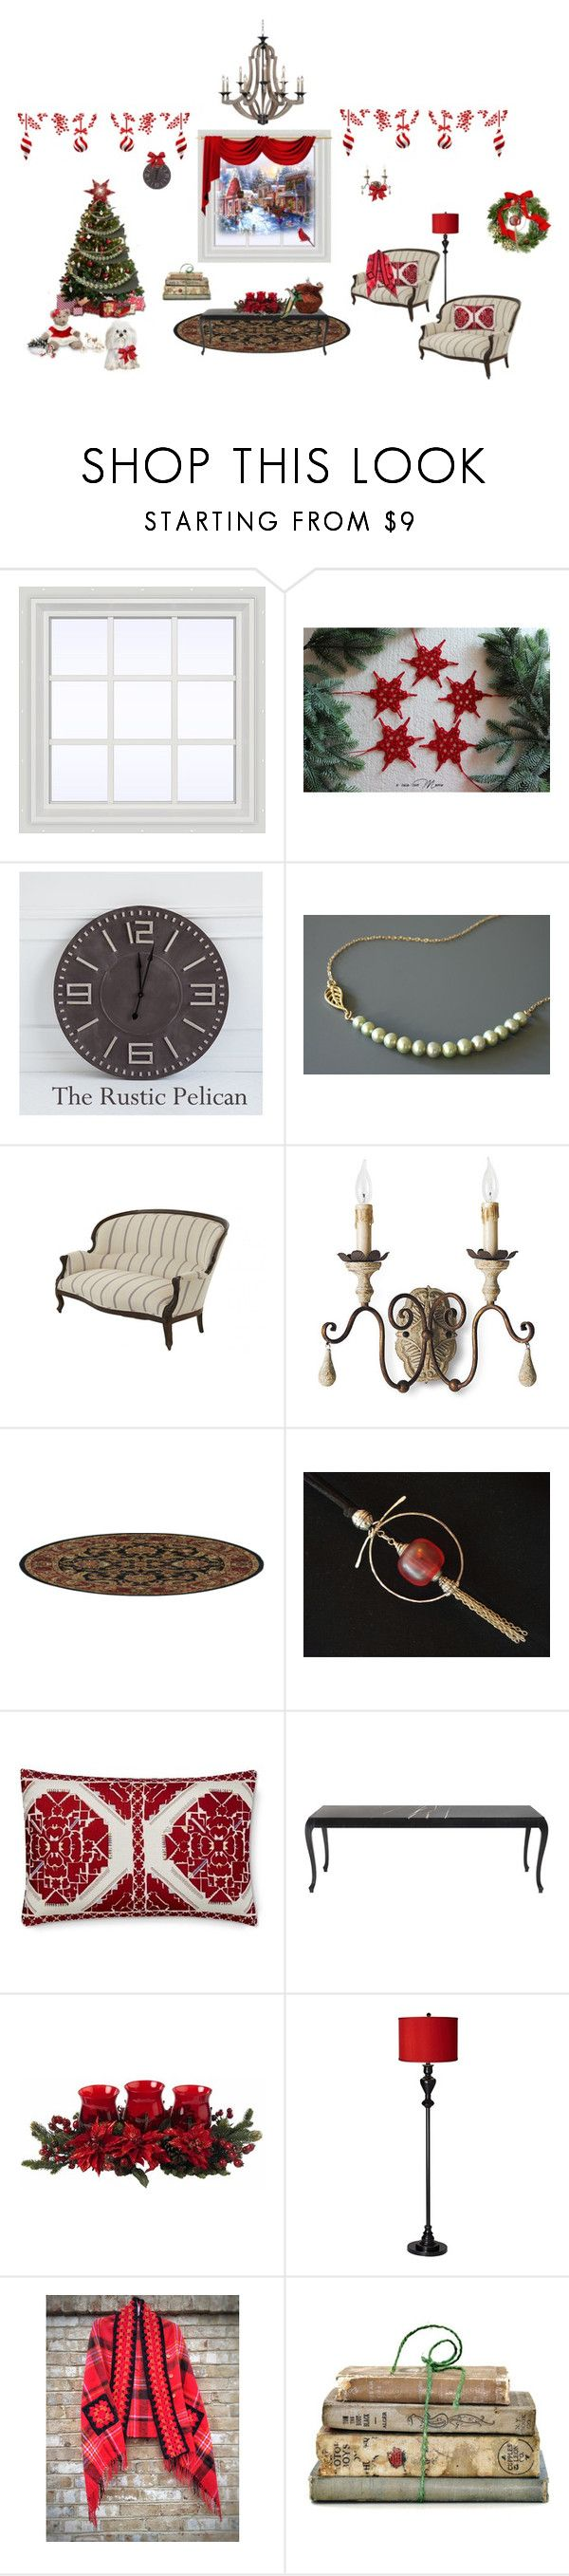 All Hearts come home for Christmas! by cozeequilts on Polyvore featuring Jayson Home, Nearly Natural, Possini Euro Design, Williams-Sonoma, Frontgate, Shabby Chic and rustic